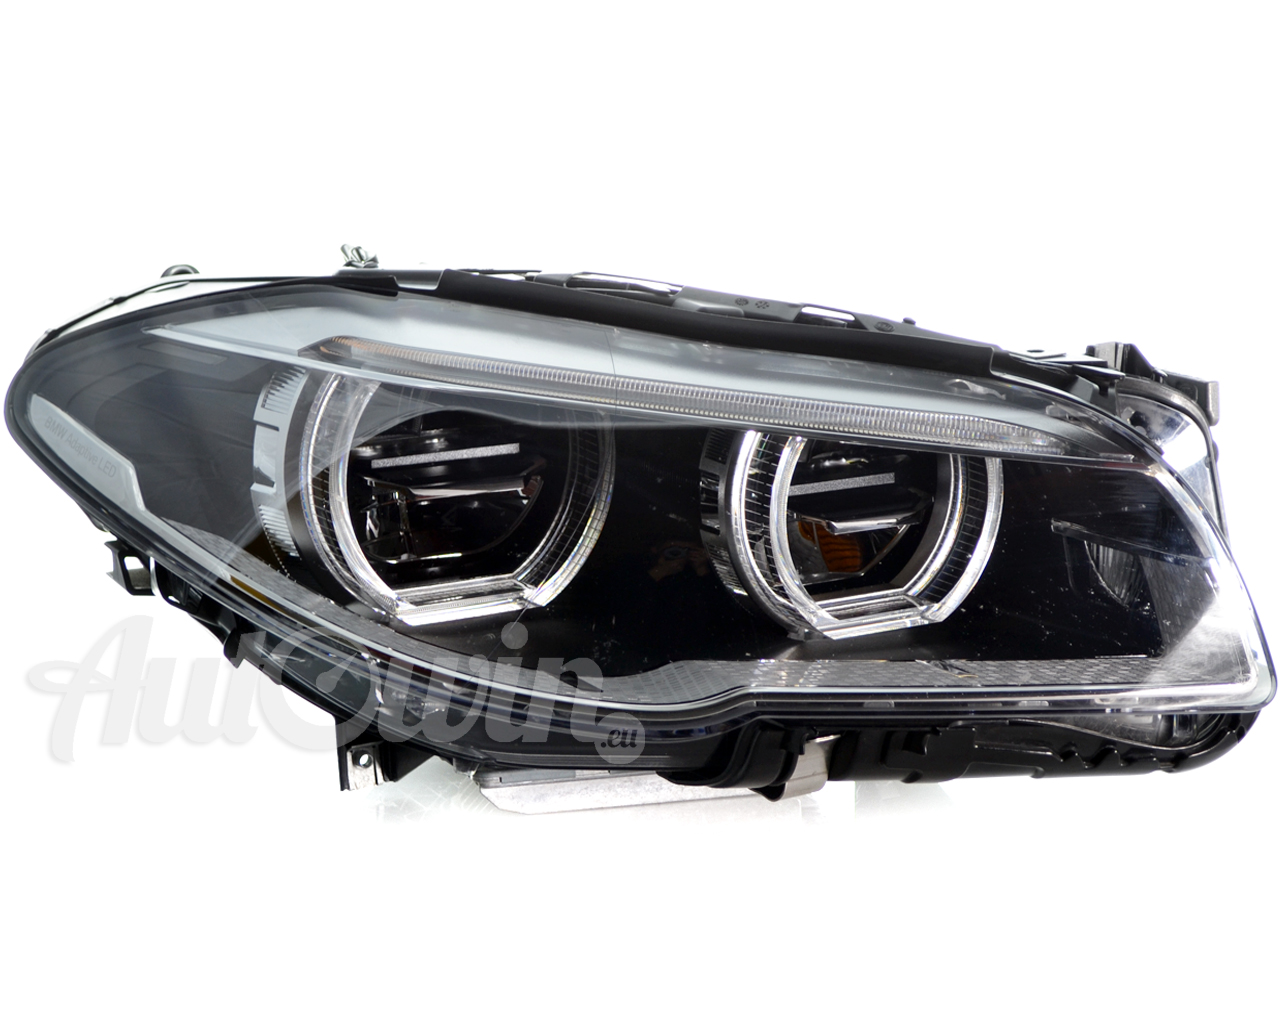 Details about BMW 5 SERIES F10 F11 FULL LED ADAPTIVE HEADLIGHT ASSEMBLY  RIGHT SIDE GENUINE